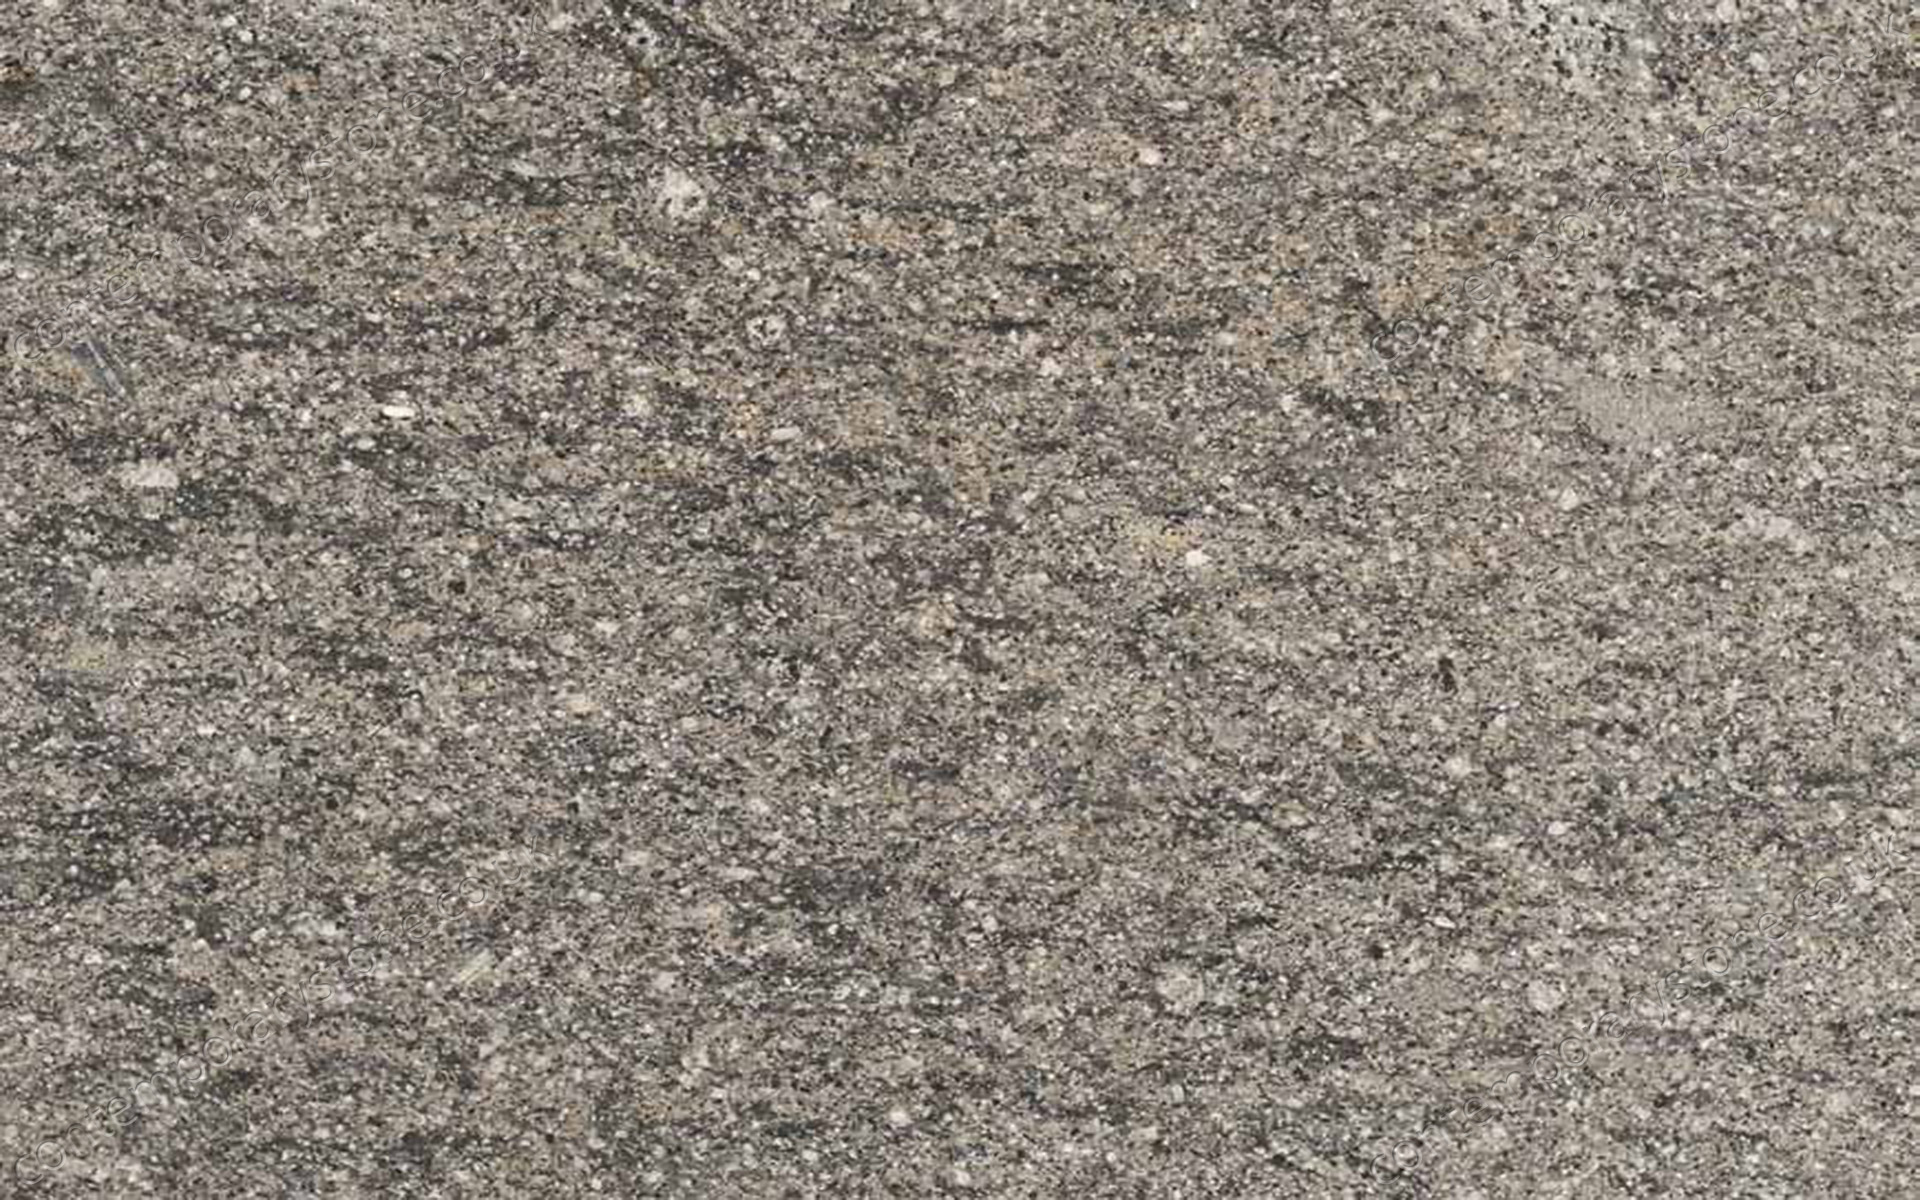 Peperino Grigio limestone close-up